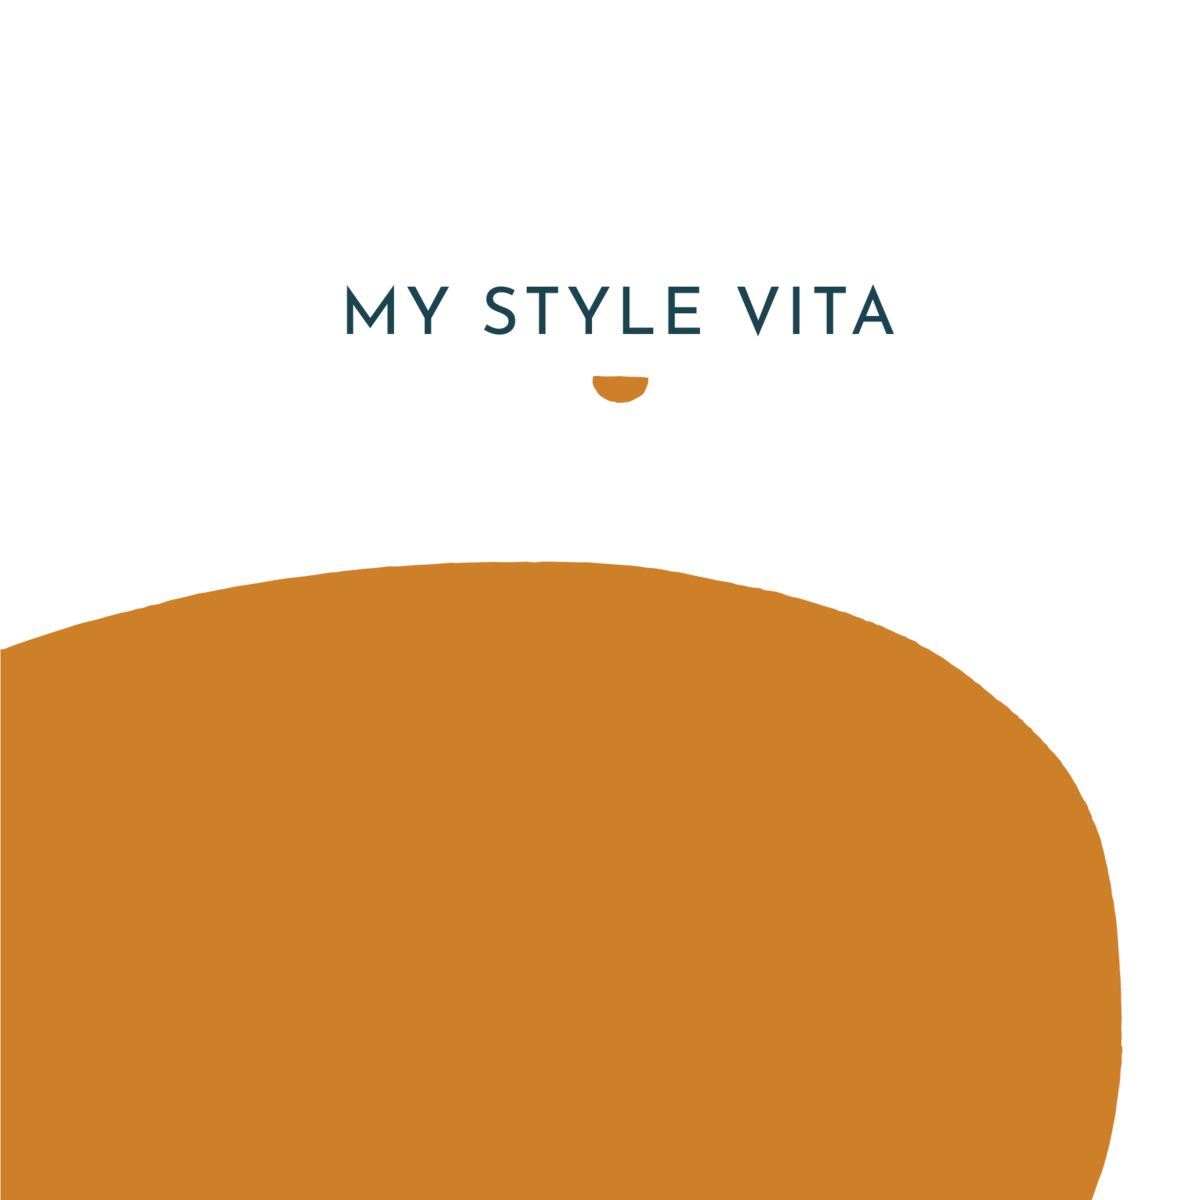 Amavi Studio Branding for My Style Vita